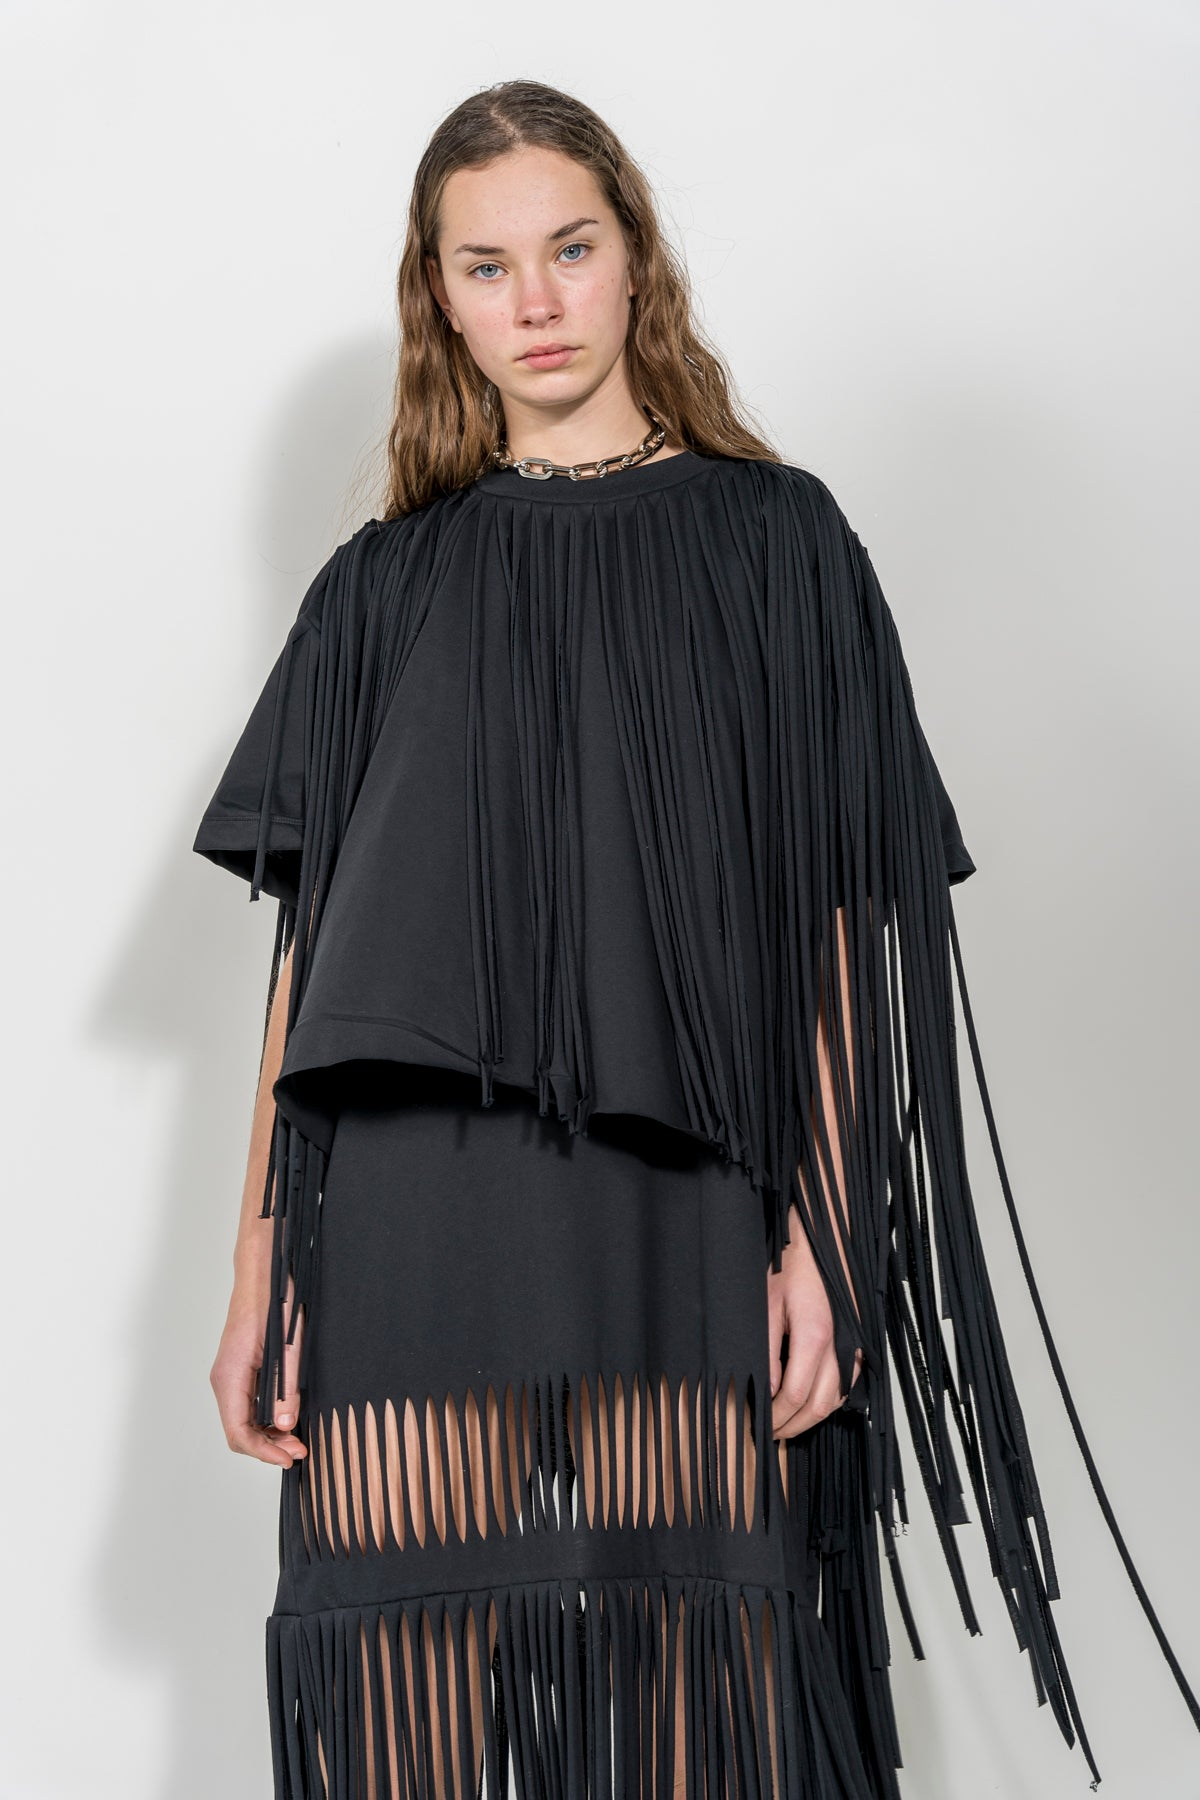 BLACK CAP SLEEVE T-SHIRT WITH FRINGE marques almeida